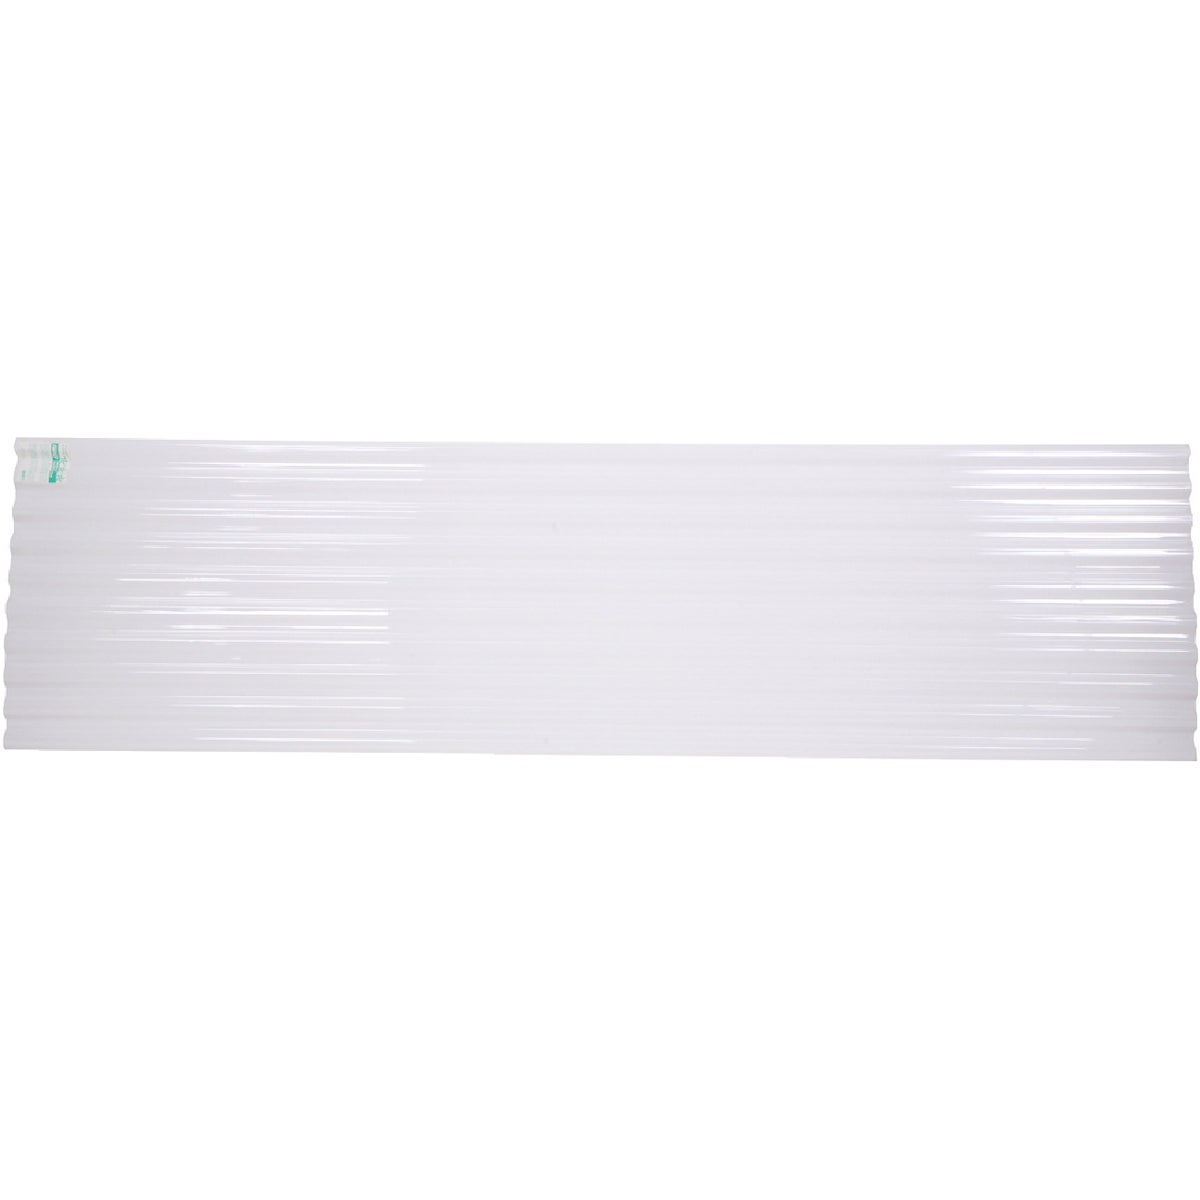 12' WHT CORRUGATED PANEL